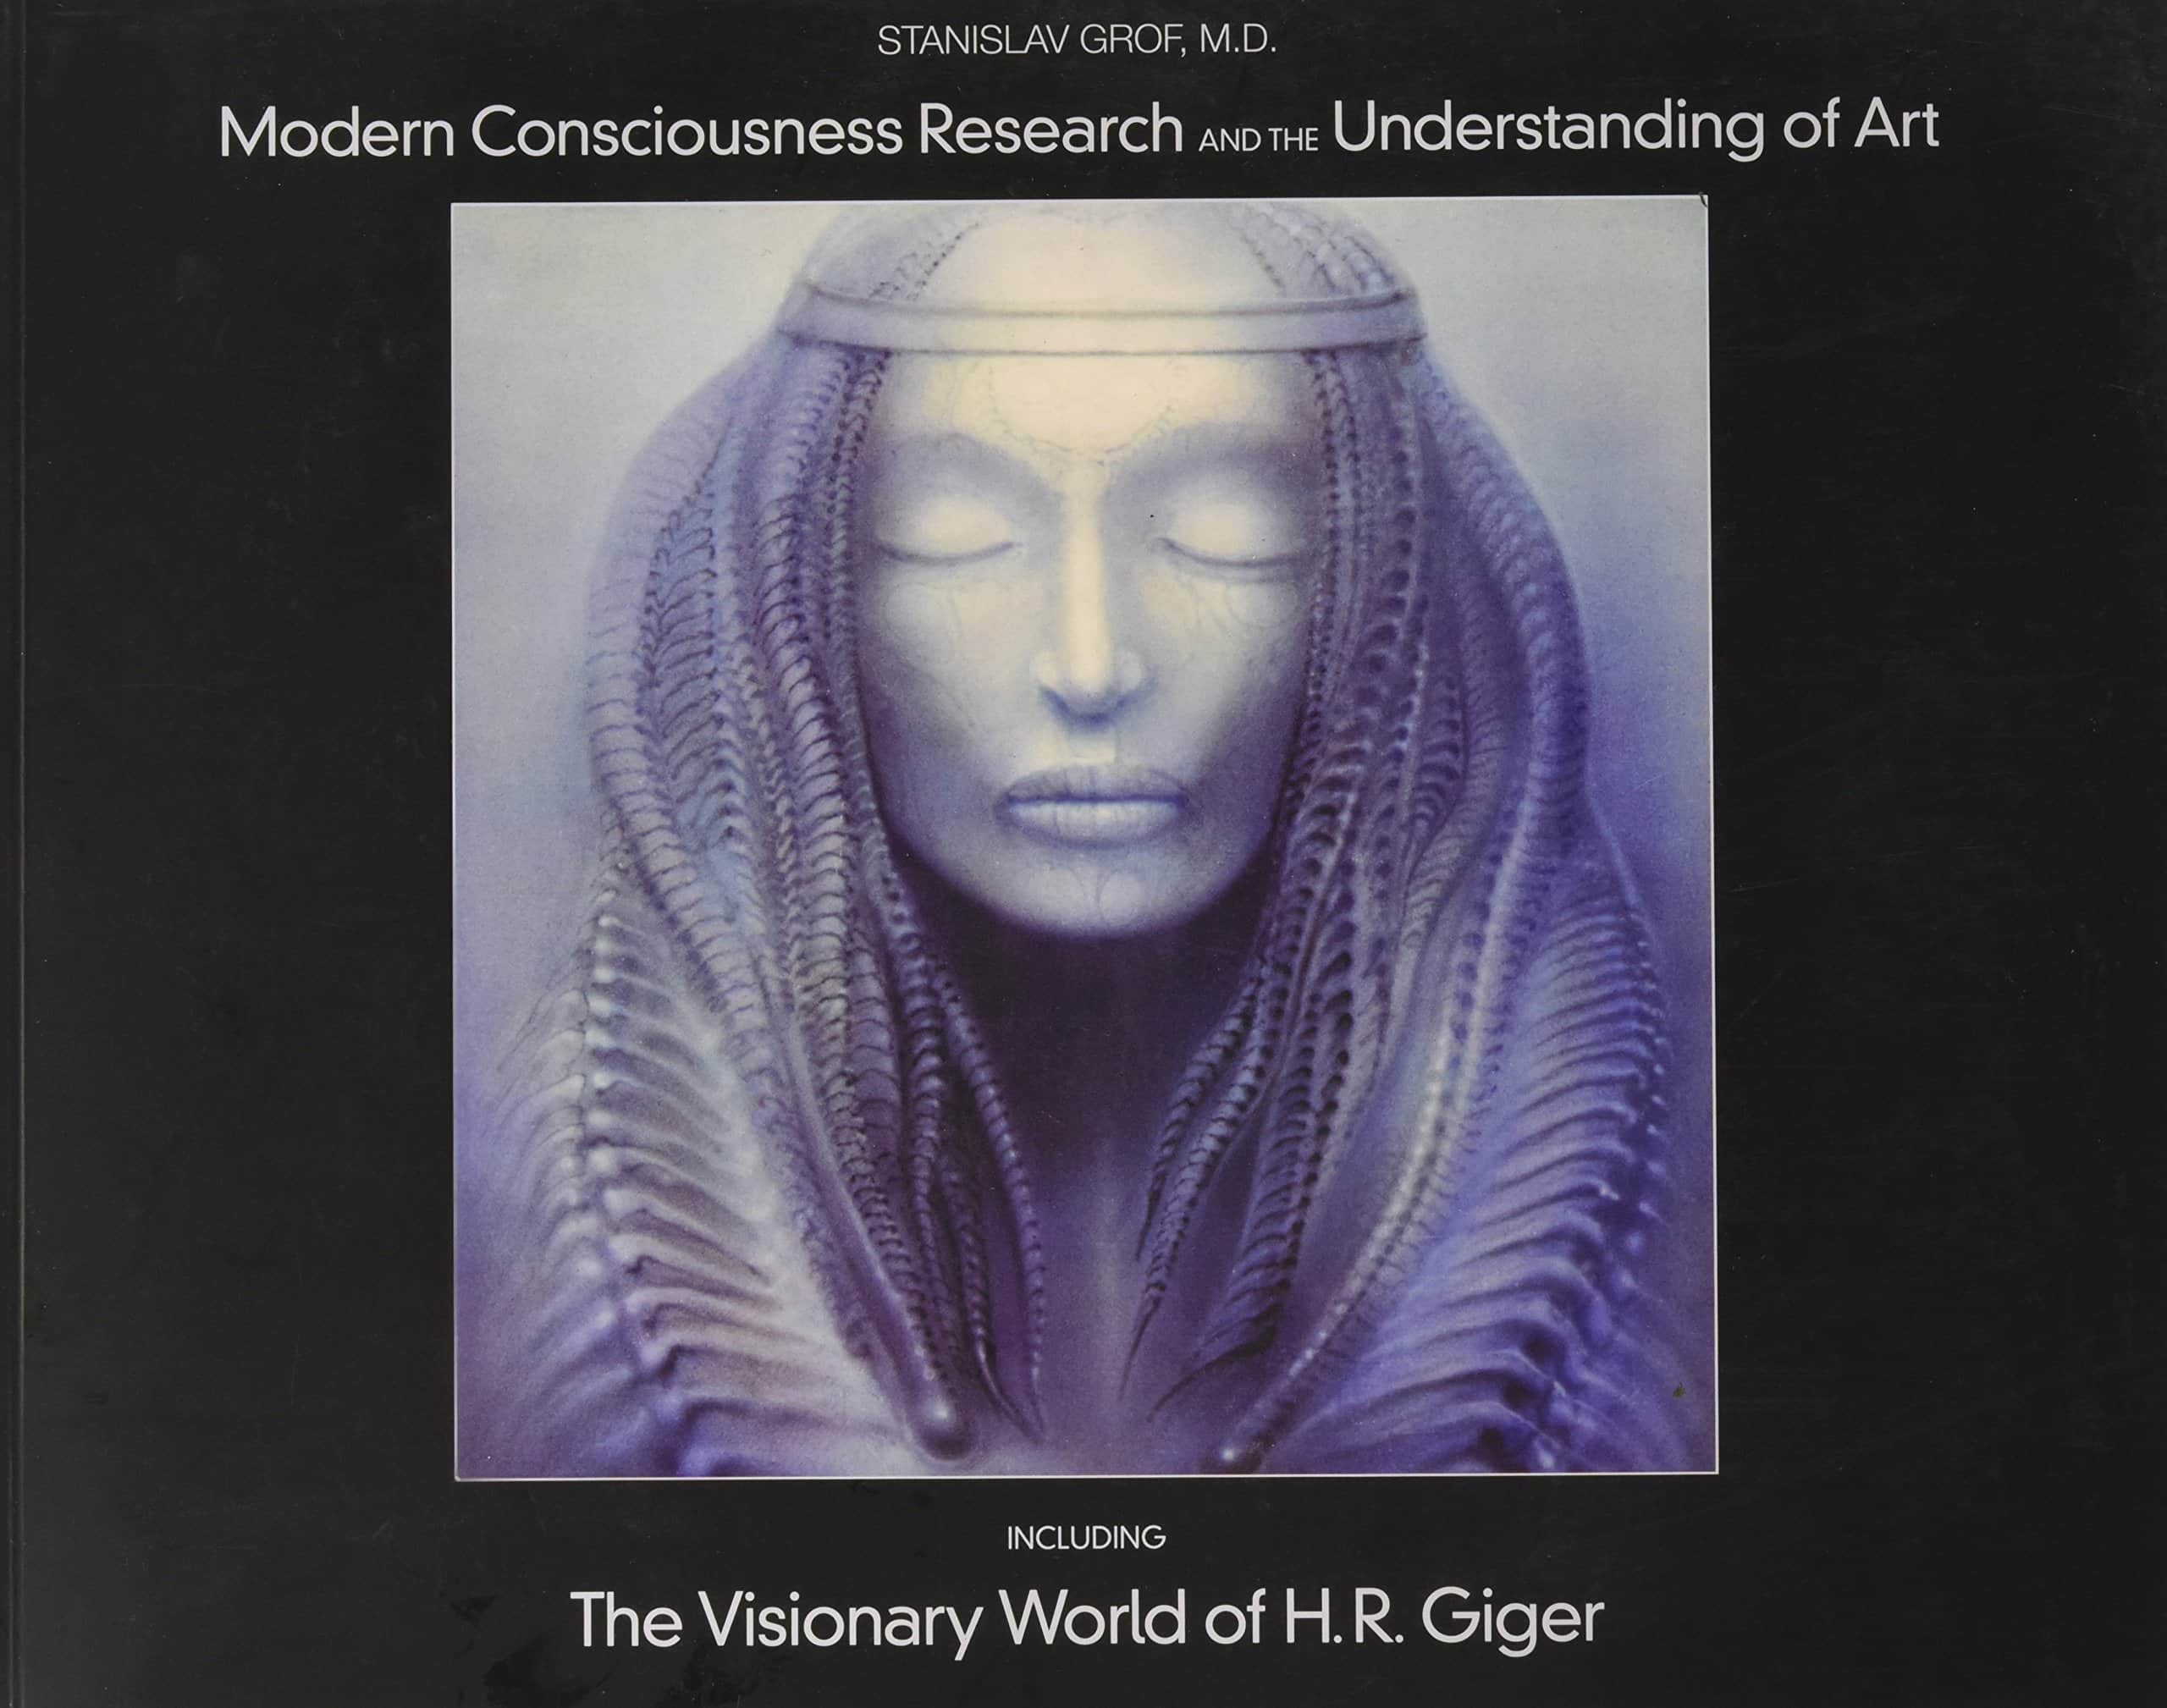 Modern Consciousness Research and the Understanding of Art,  Including The Visionary World of H.R. Giger